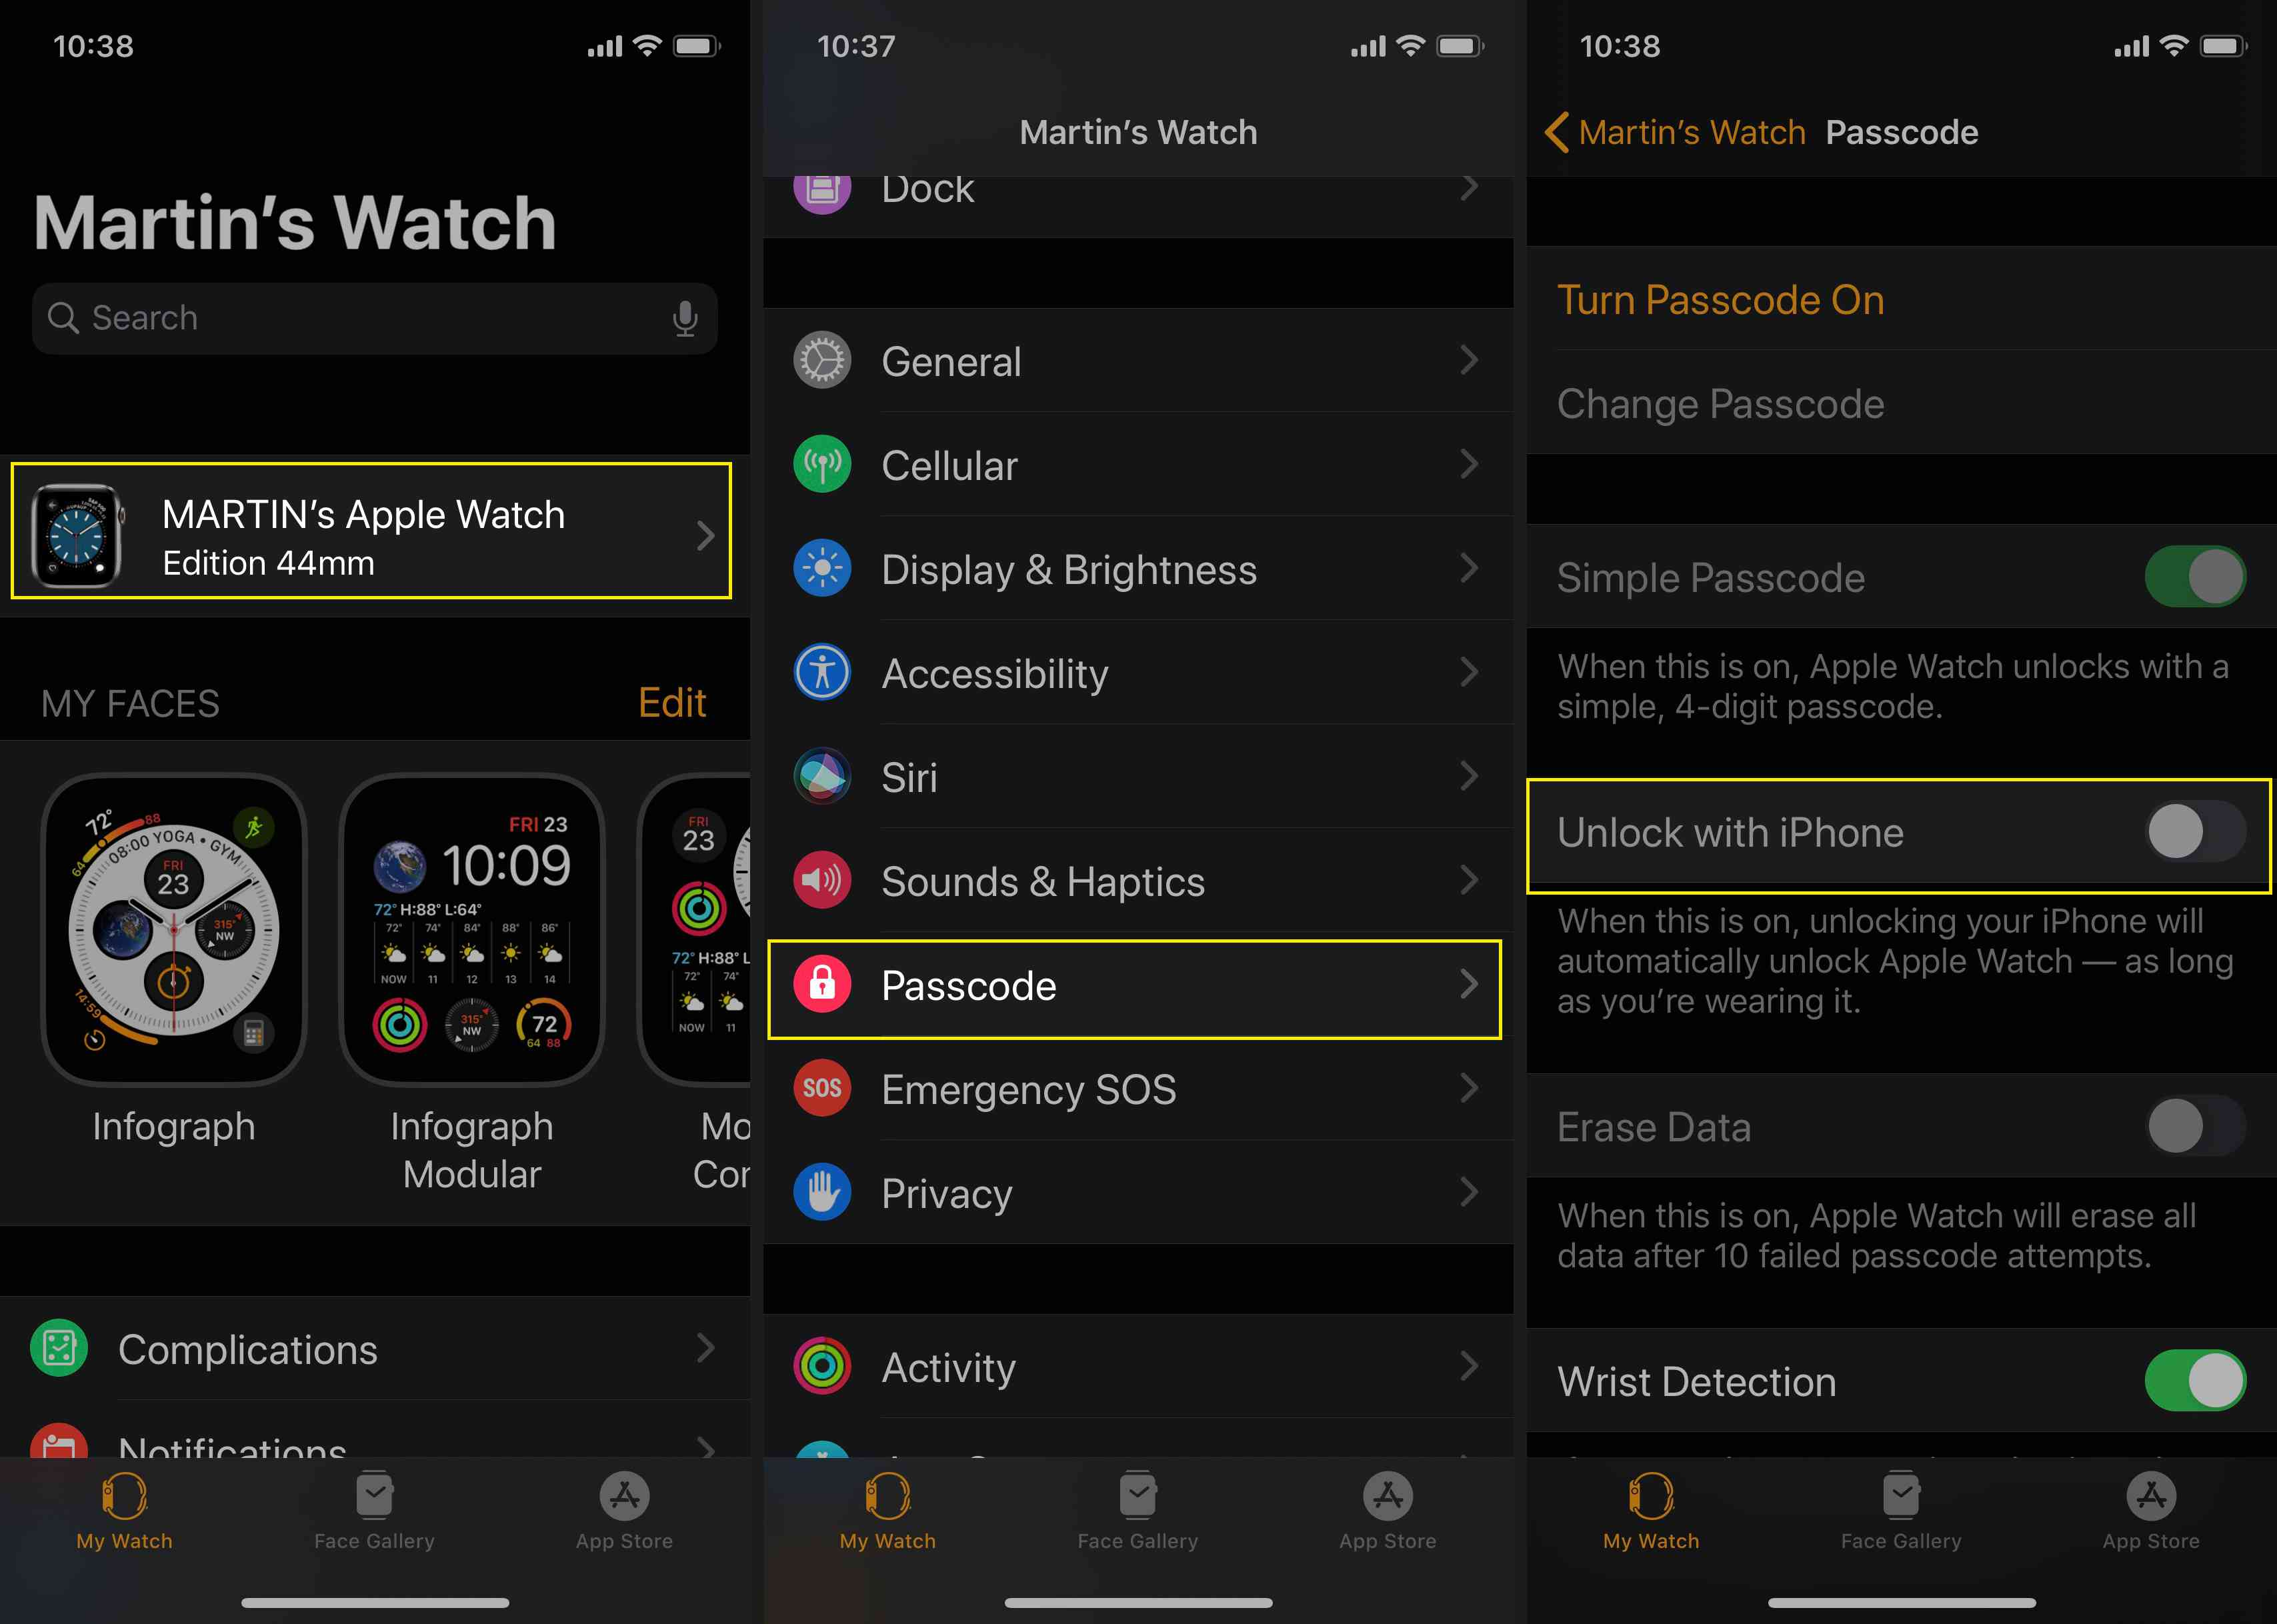 Use Watch app to set your Apple Watch to Unlock with iPhone